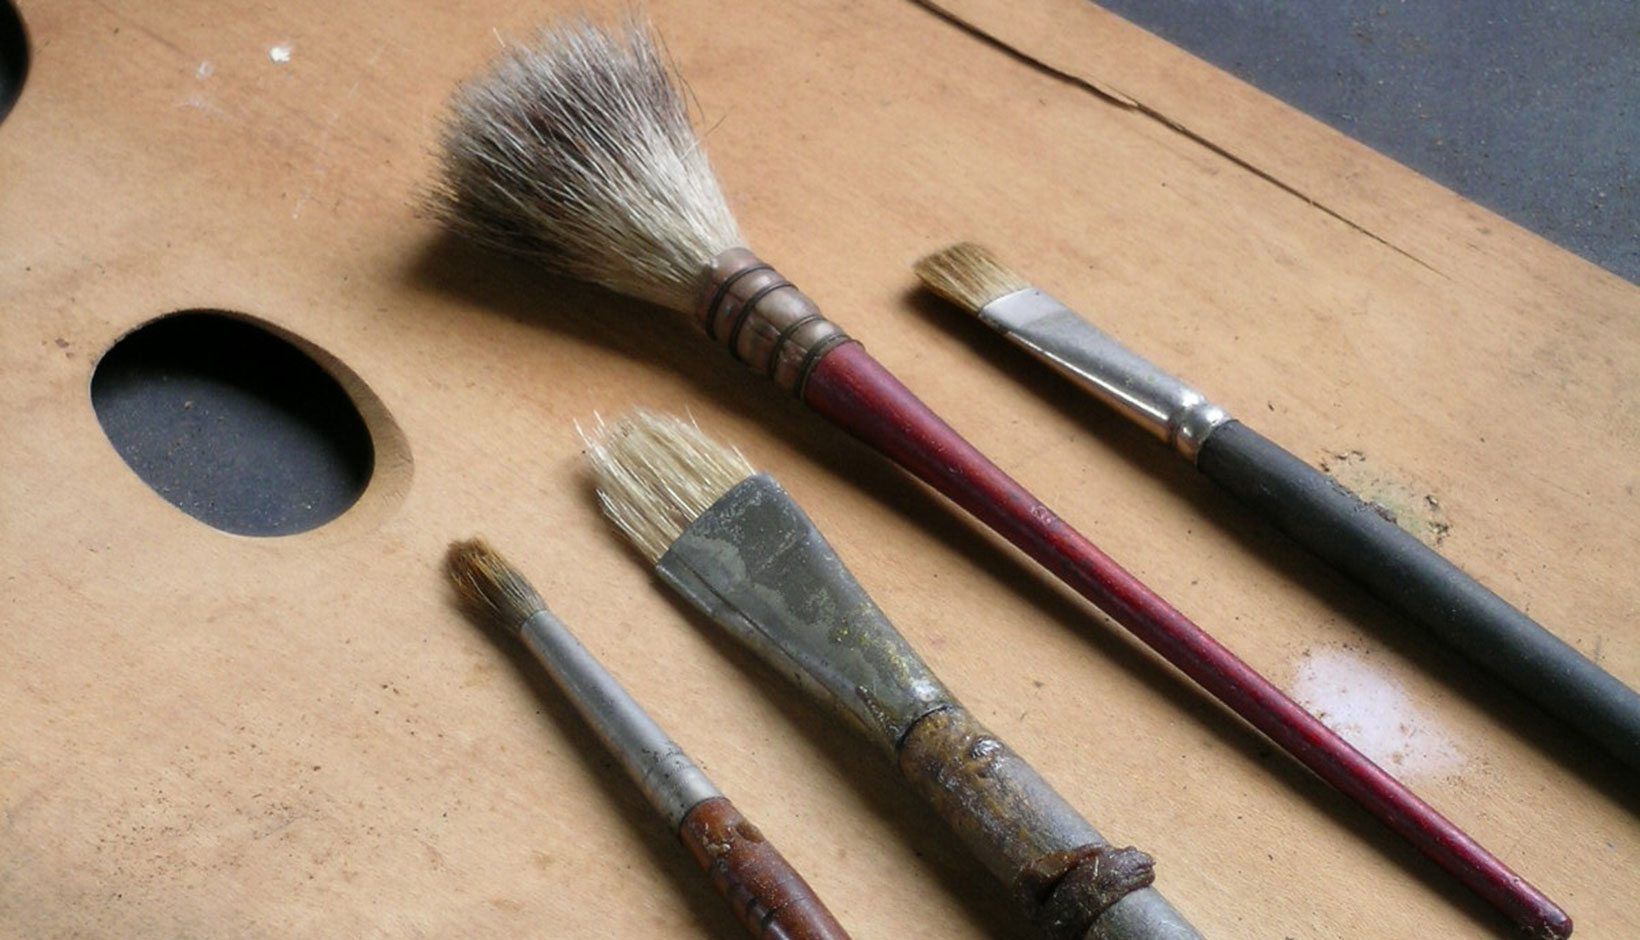 official photos 8fc04 33d59 The quality and nature of the brush is determined by the bristles. Most  often made from animal tails or skin, individual bristles can be pointy,  blunt, ...